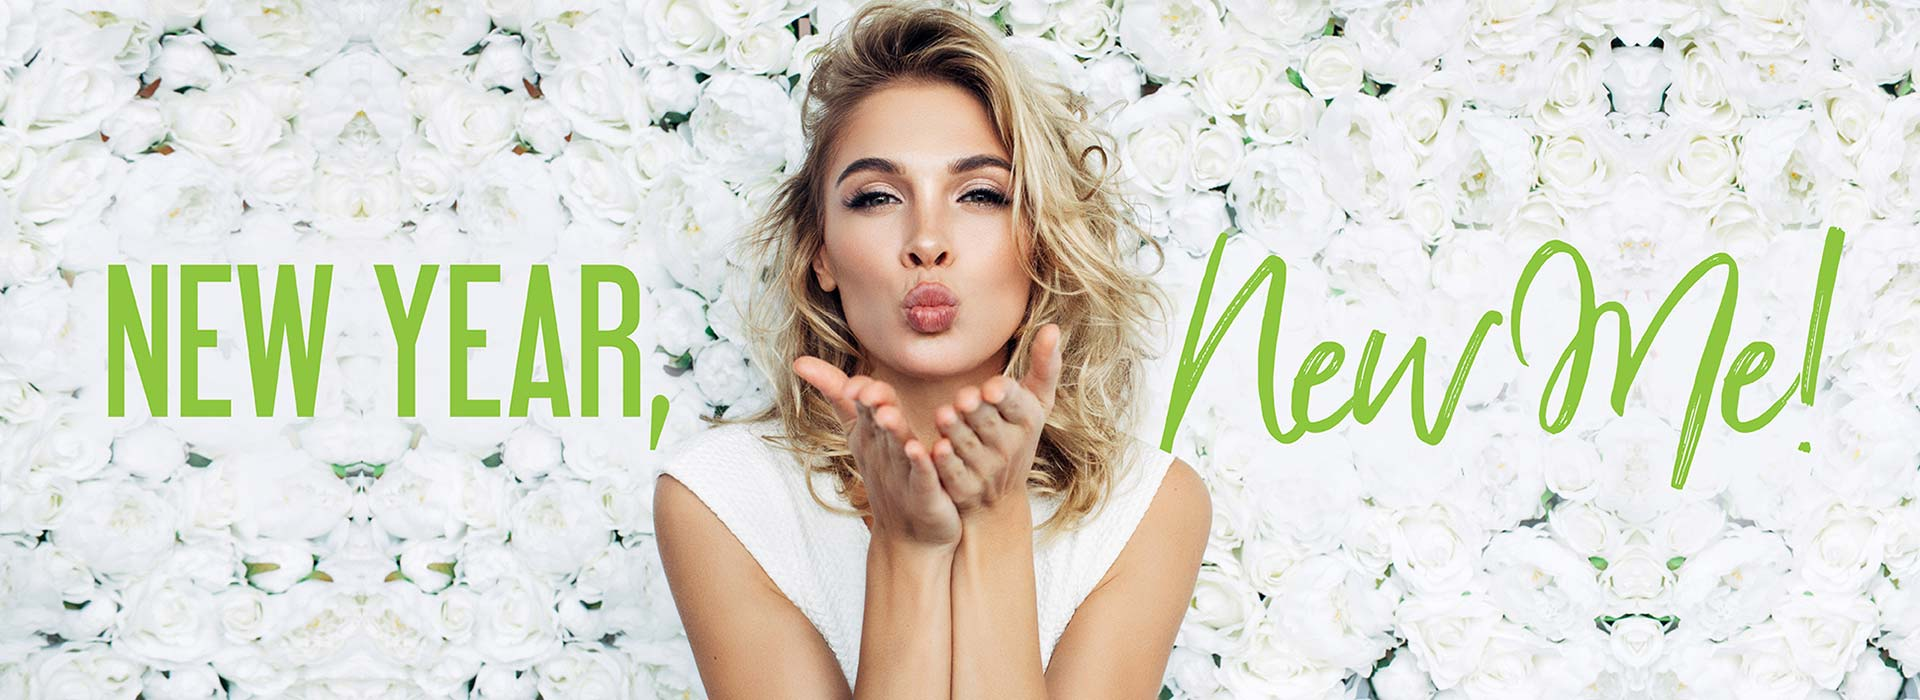 New Year, New Me! | Woman blowing kiss with both hands over white rose background